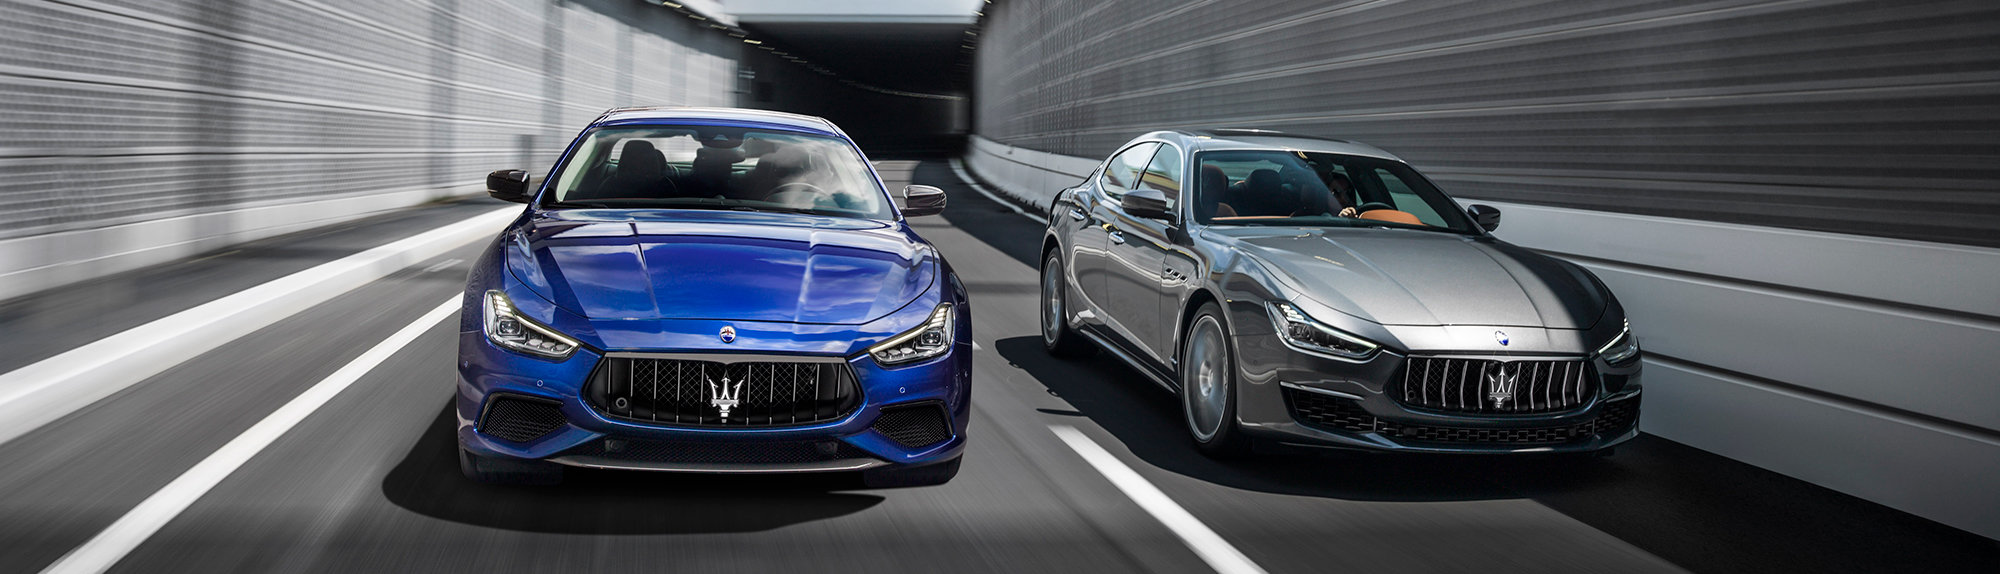 blue and silver maserati ghibli racing down wilkes-barre blvd